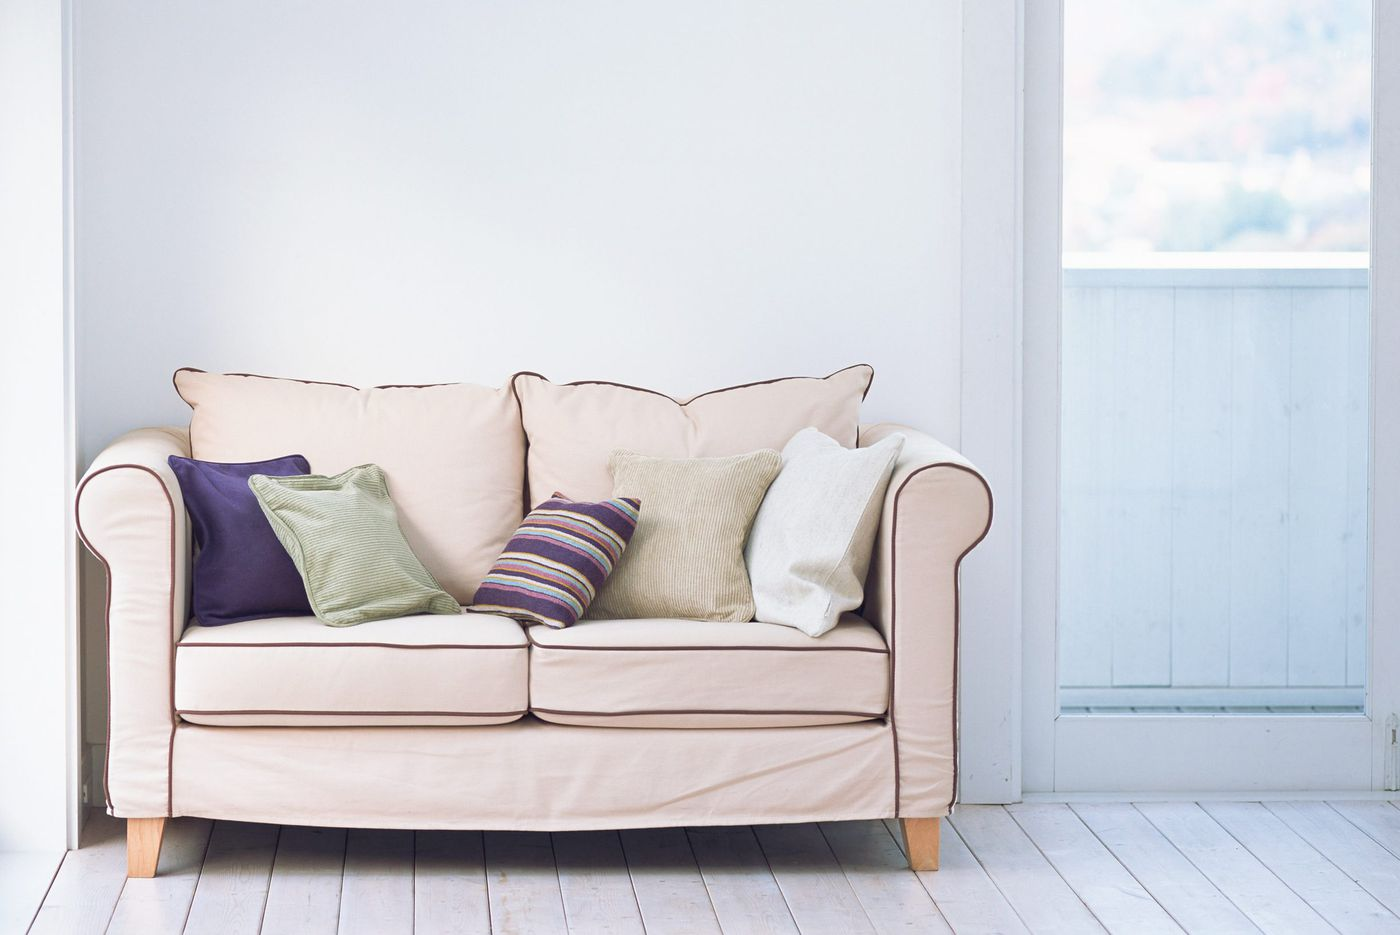 Ask Jennifer Adams: Is buying or reupholstering used furniture worth it?